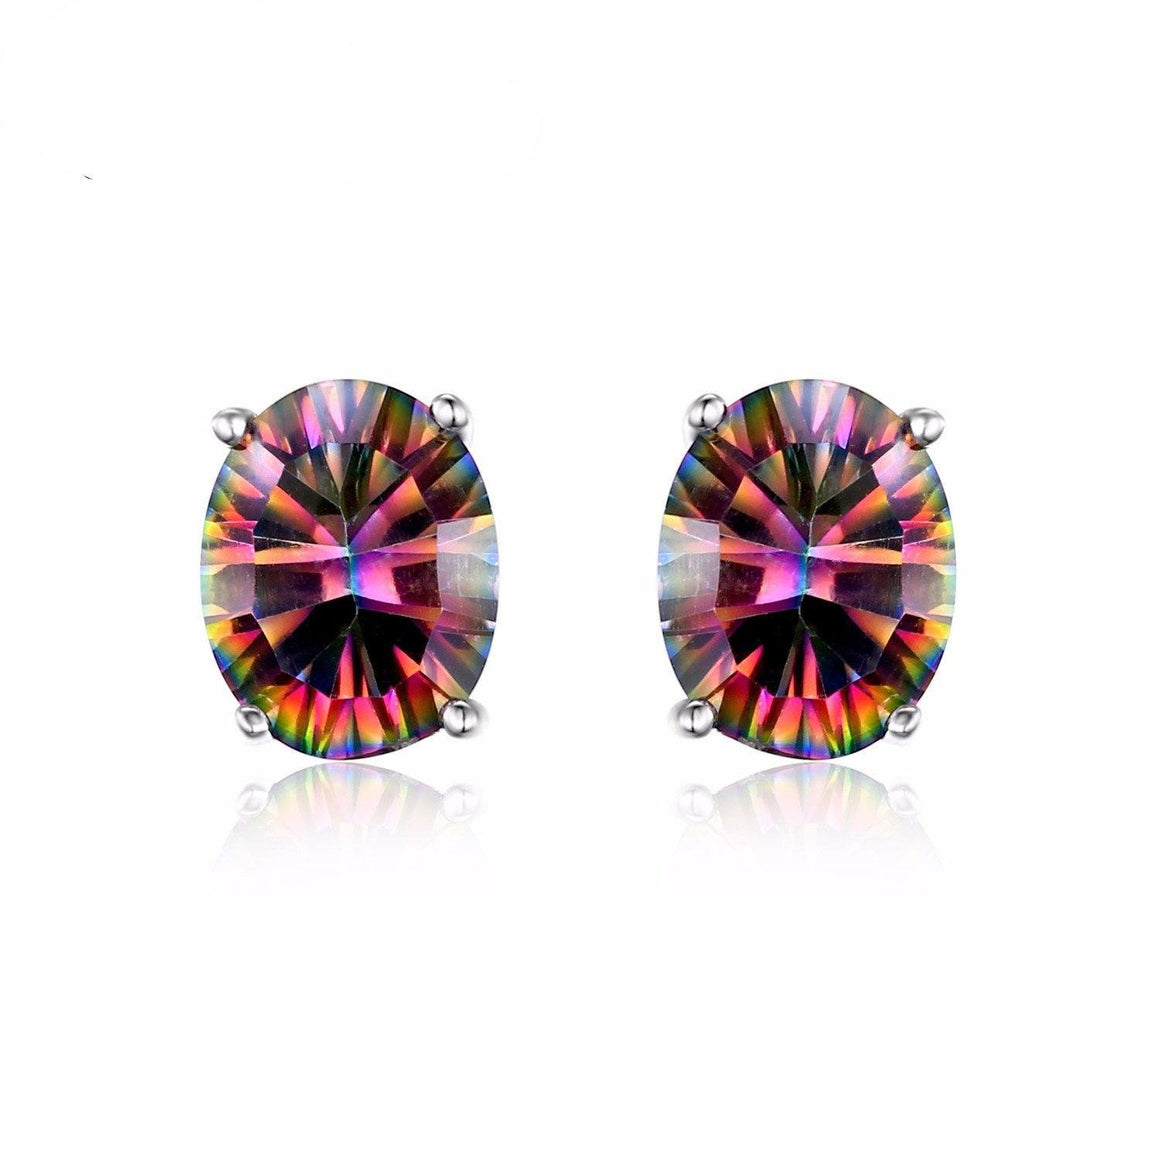 1.5ct Fire Rainbow Mystic Topaz Earrings - AtPerry's Healing Crystals™